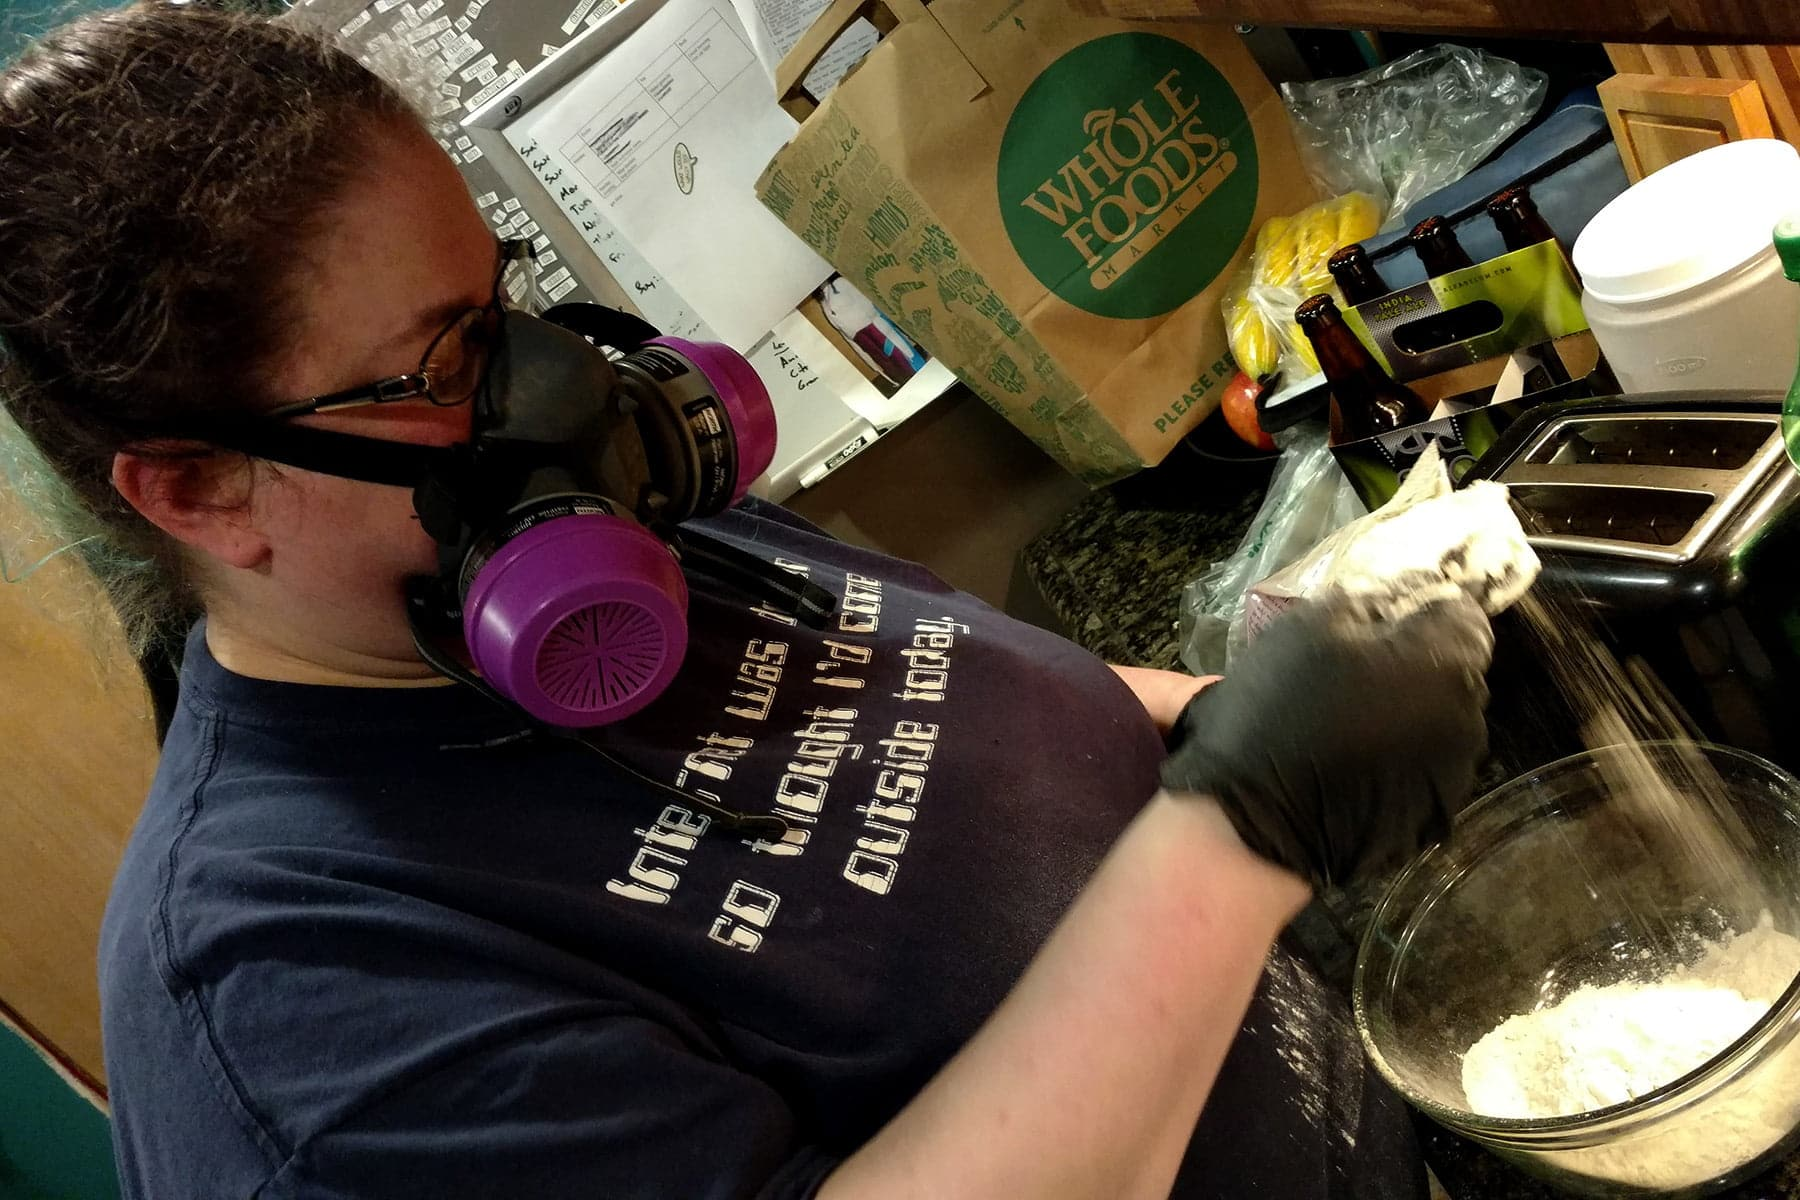 The author is pictured wearing a dark blue shirt and a half mask. She is wearing black nitrile gloves while handling vital wheat gluten.